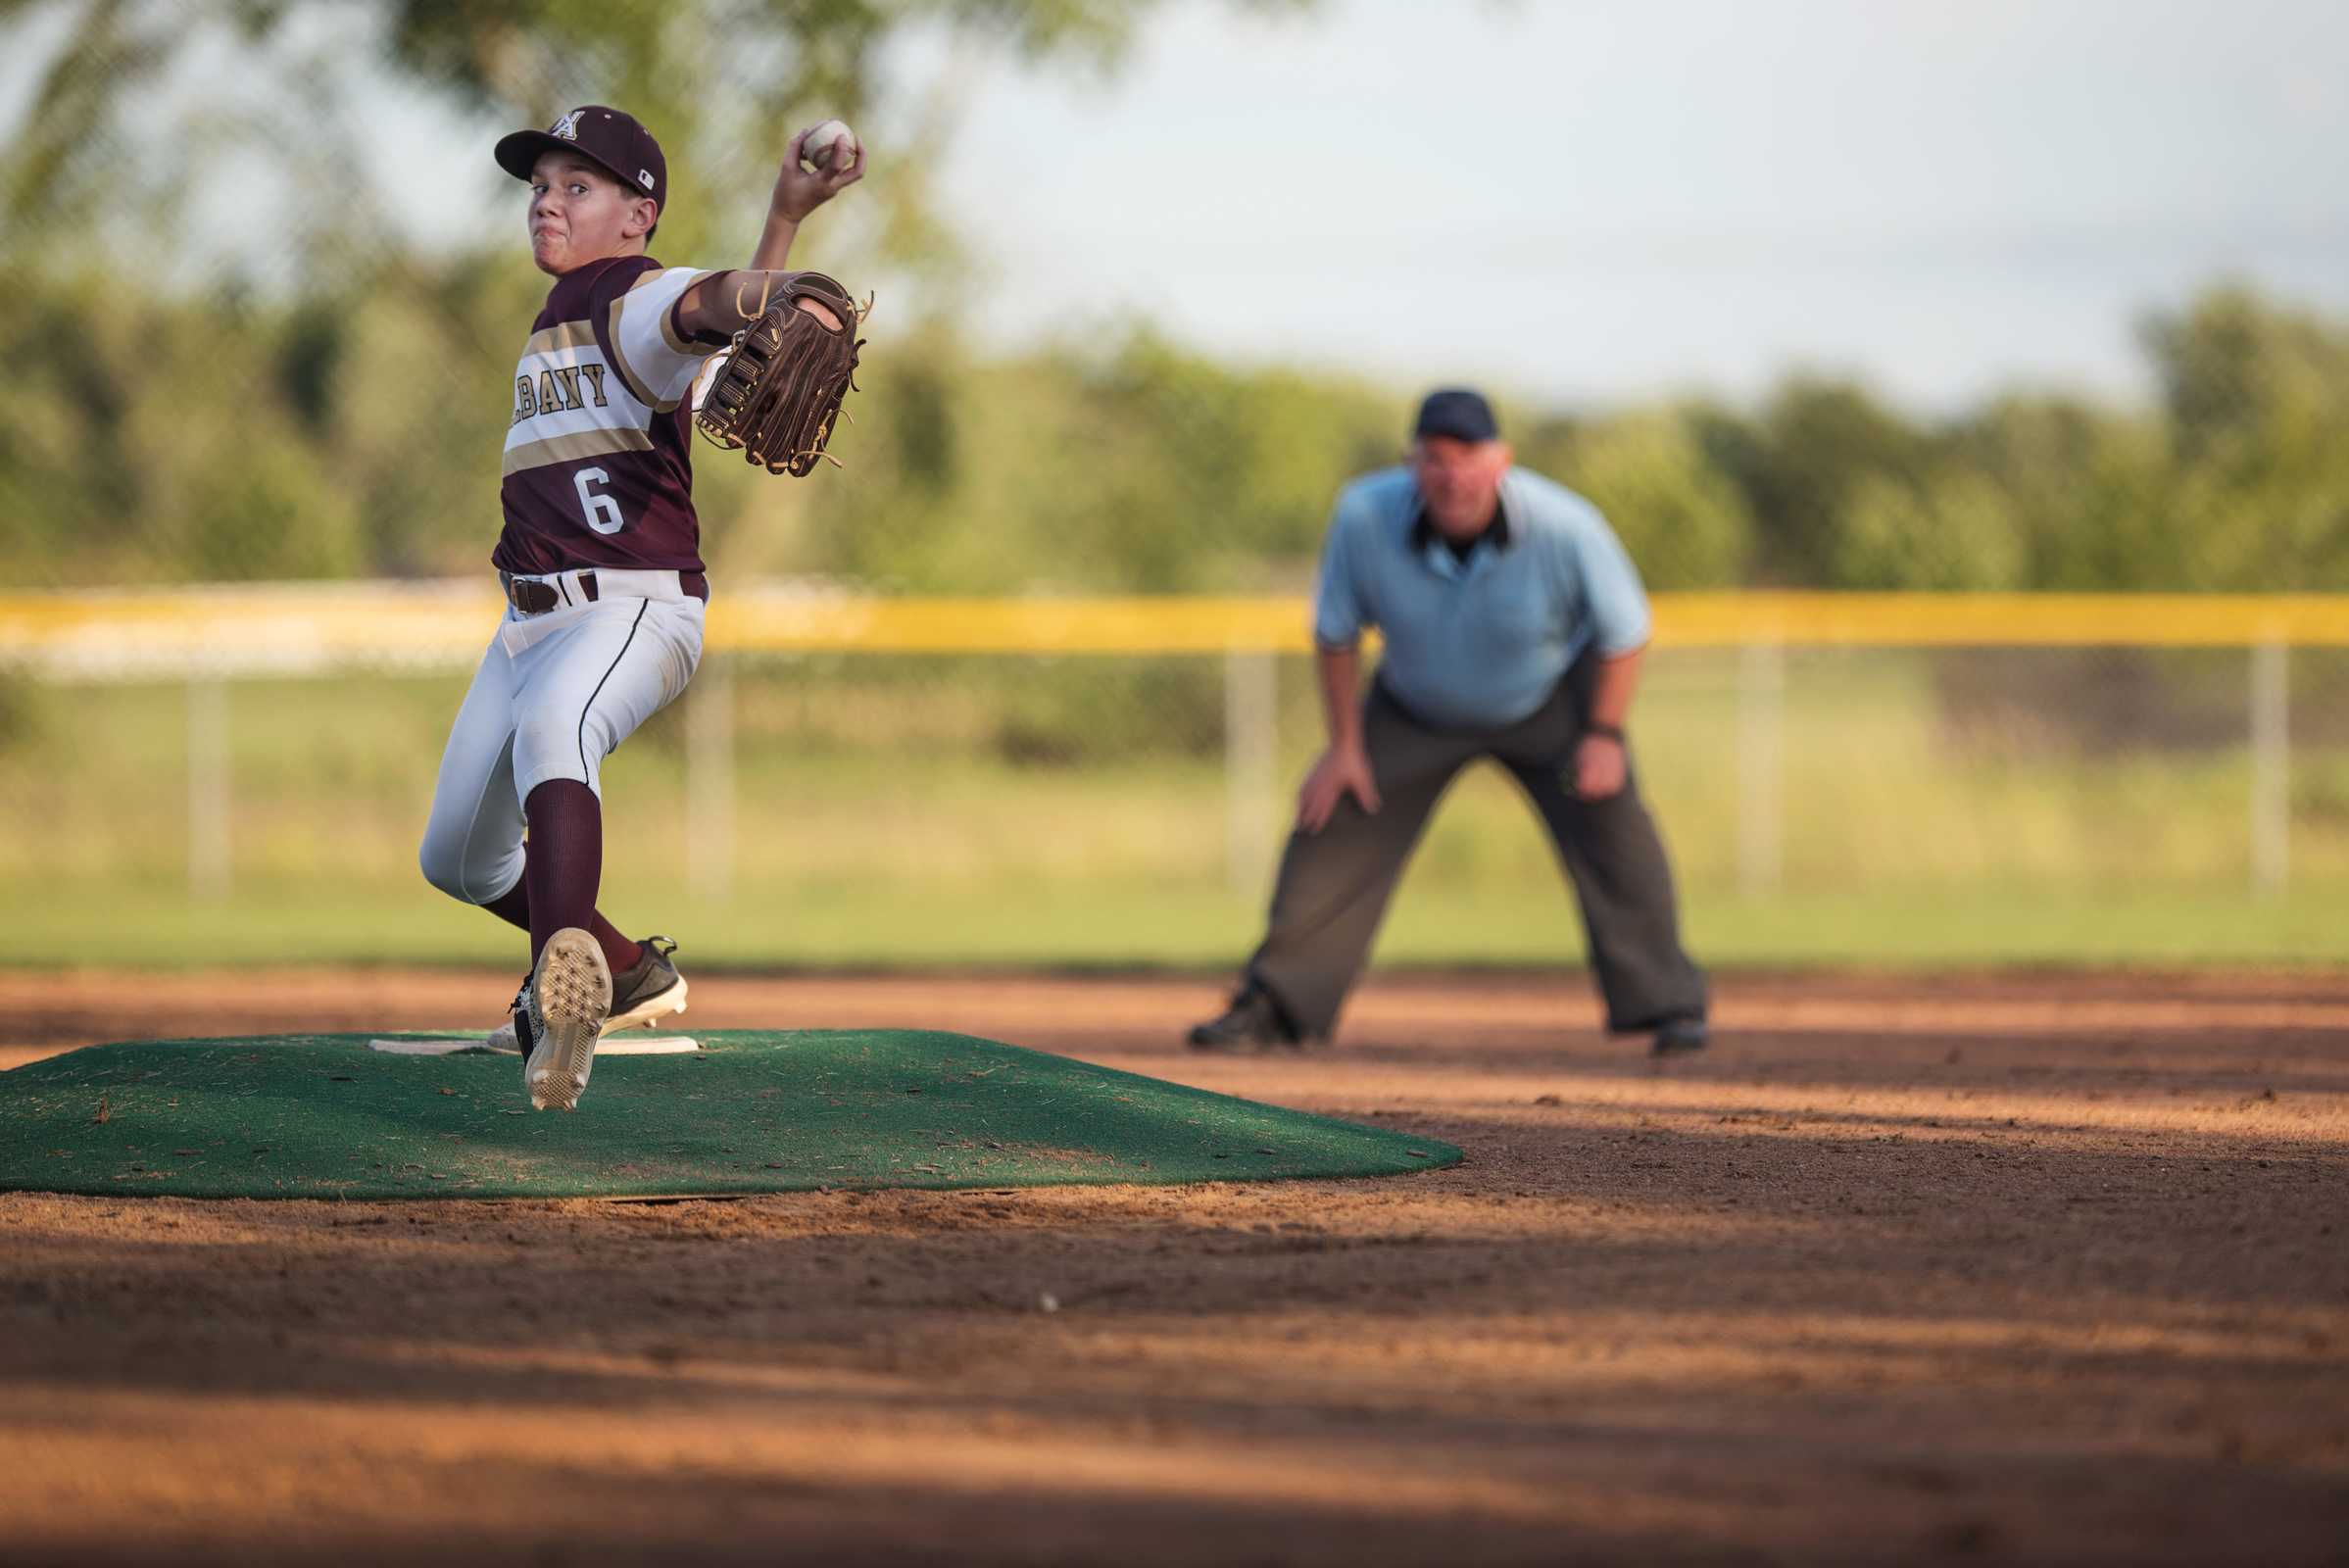 photographing kids sports boy throwing baseball pitcher by kellie bieser